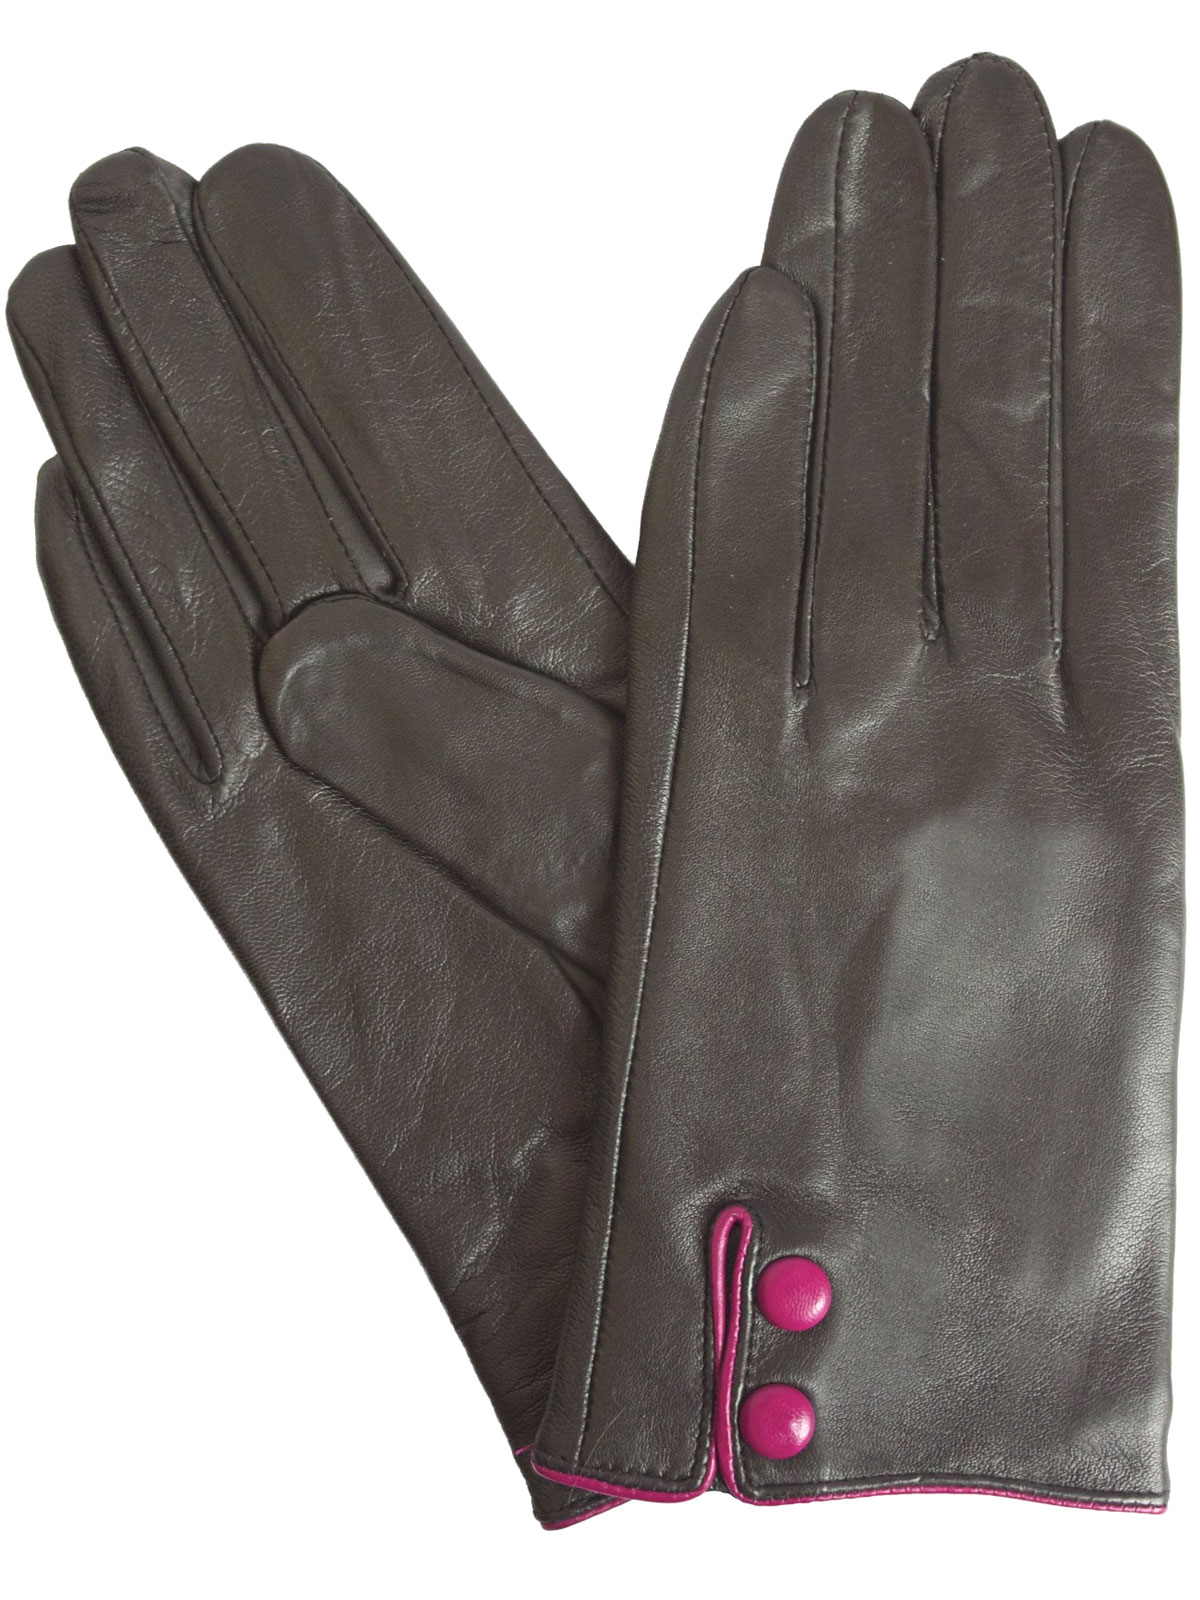 Black leather gloves buttons - Pia Rossini Ladies Black Leather Gloves With Orchid Buttons